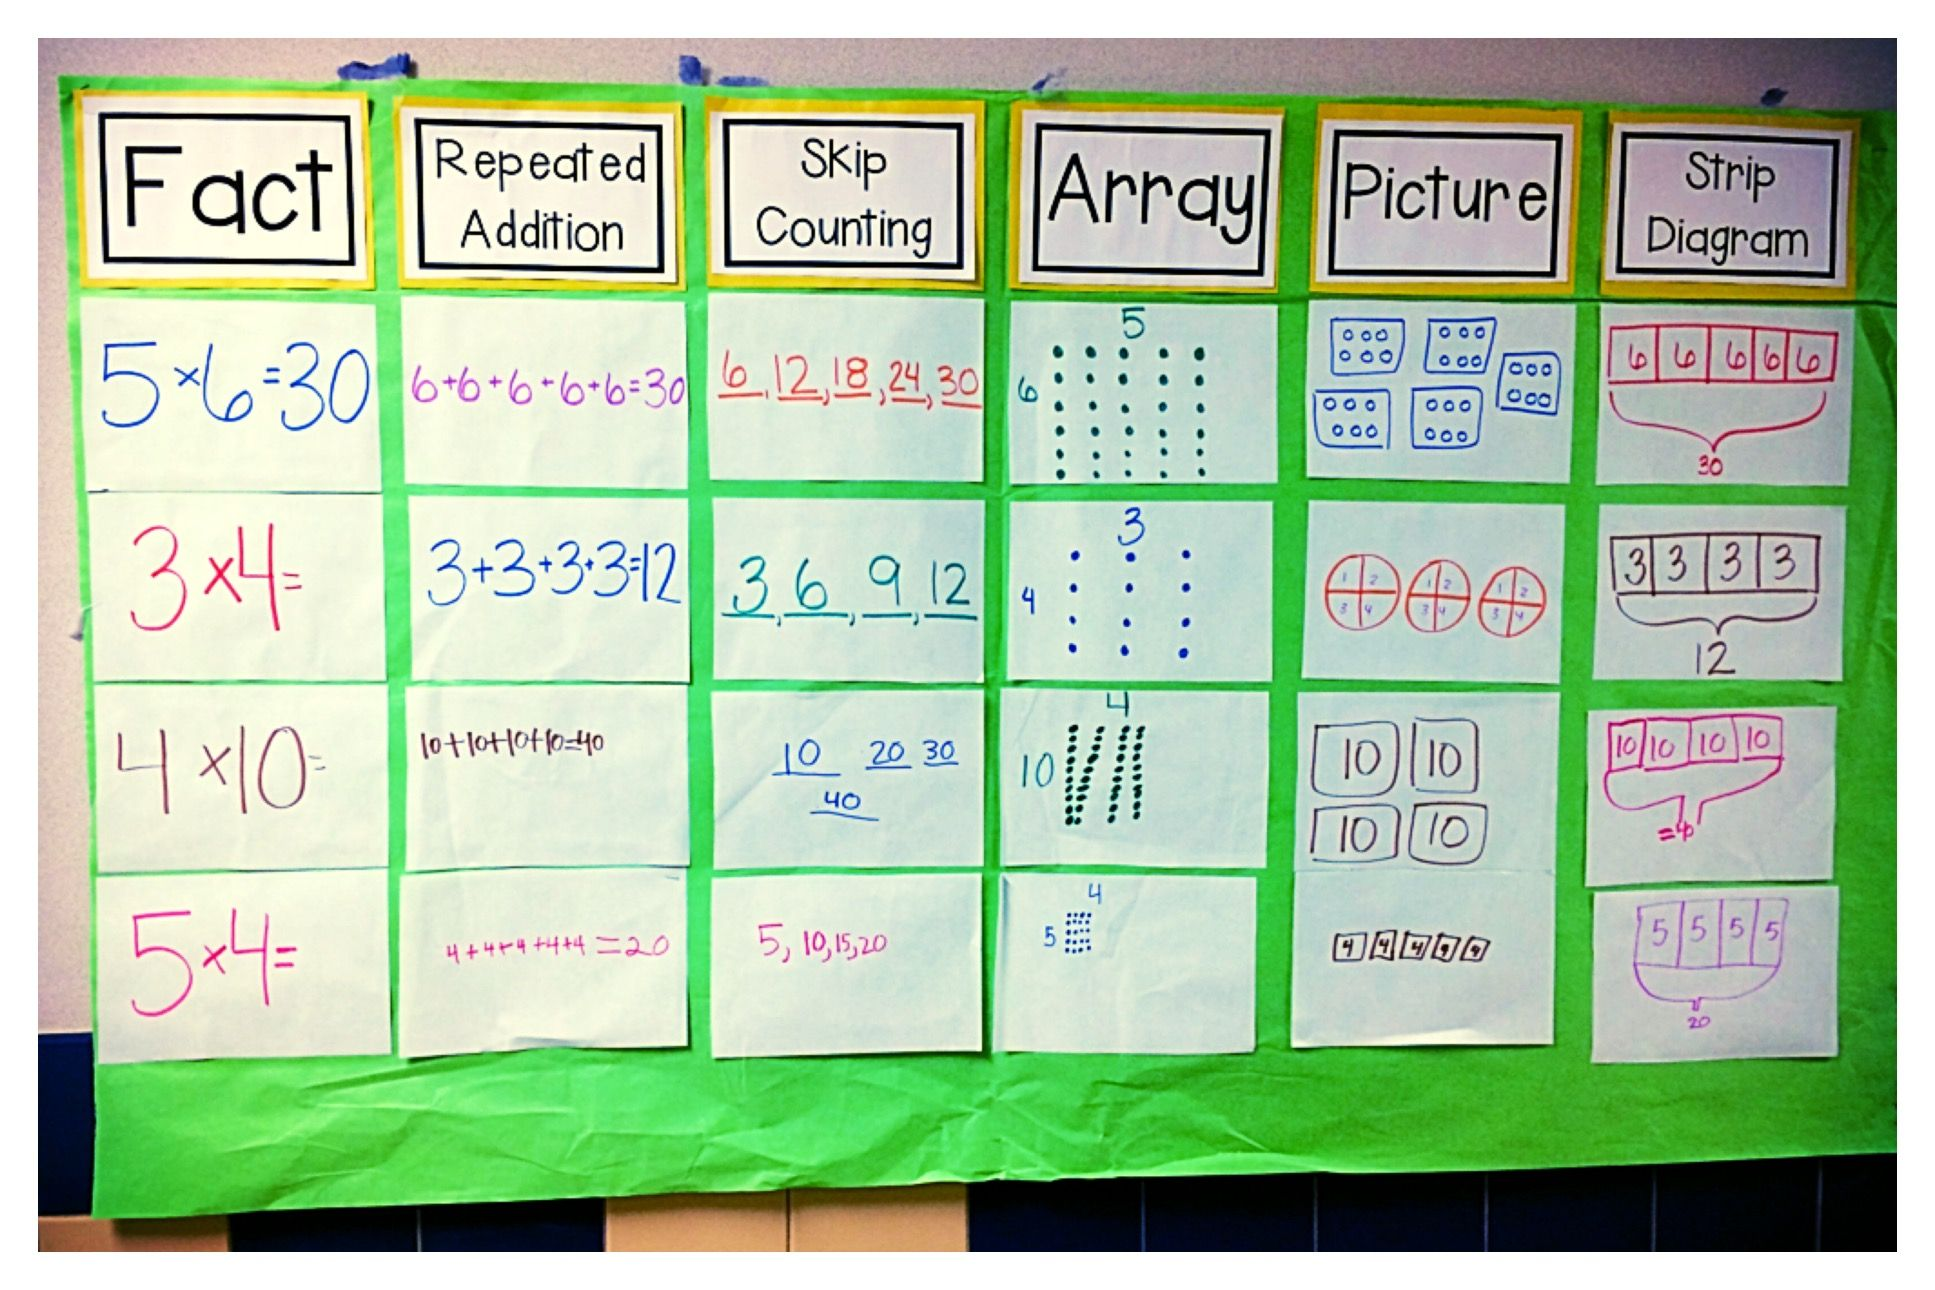 Fact Array Strip Diagram All In One Board